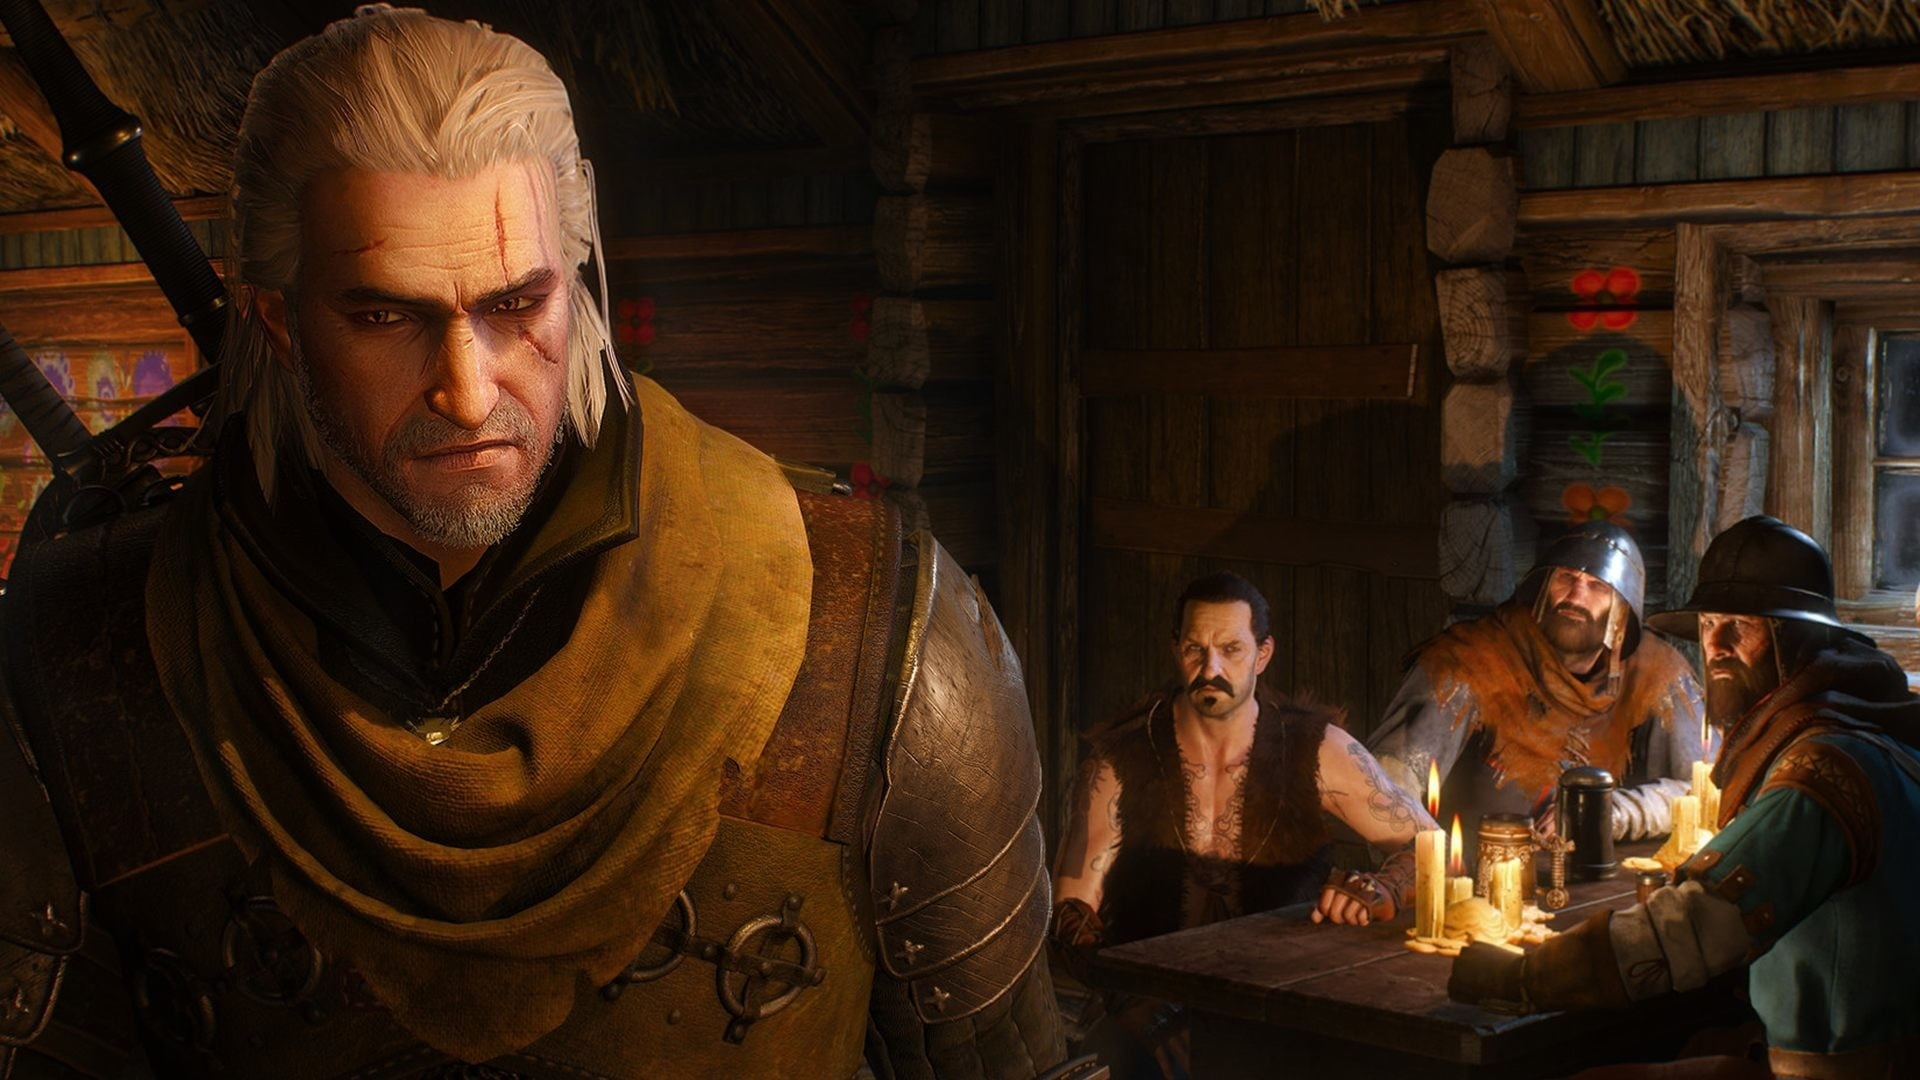 The Witcher 3: Wild Hunt - Complete Edition | All the Biggest Video Game Releases in October 2019 | Gammicks